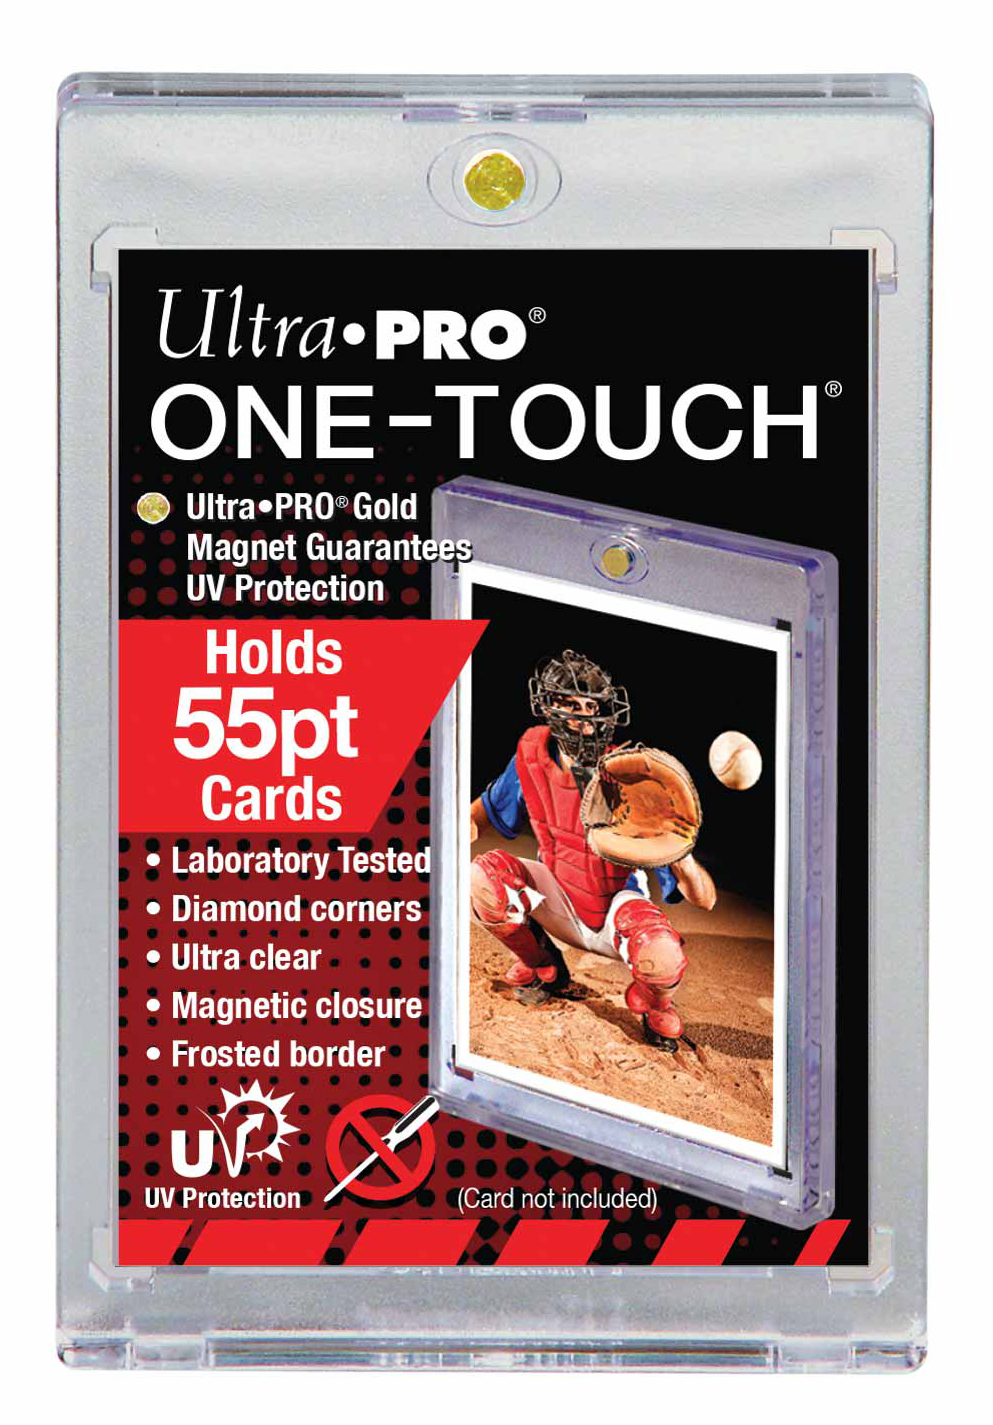 55pt One-Touch Magnetic Card Holder